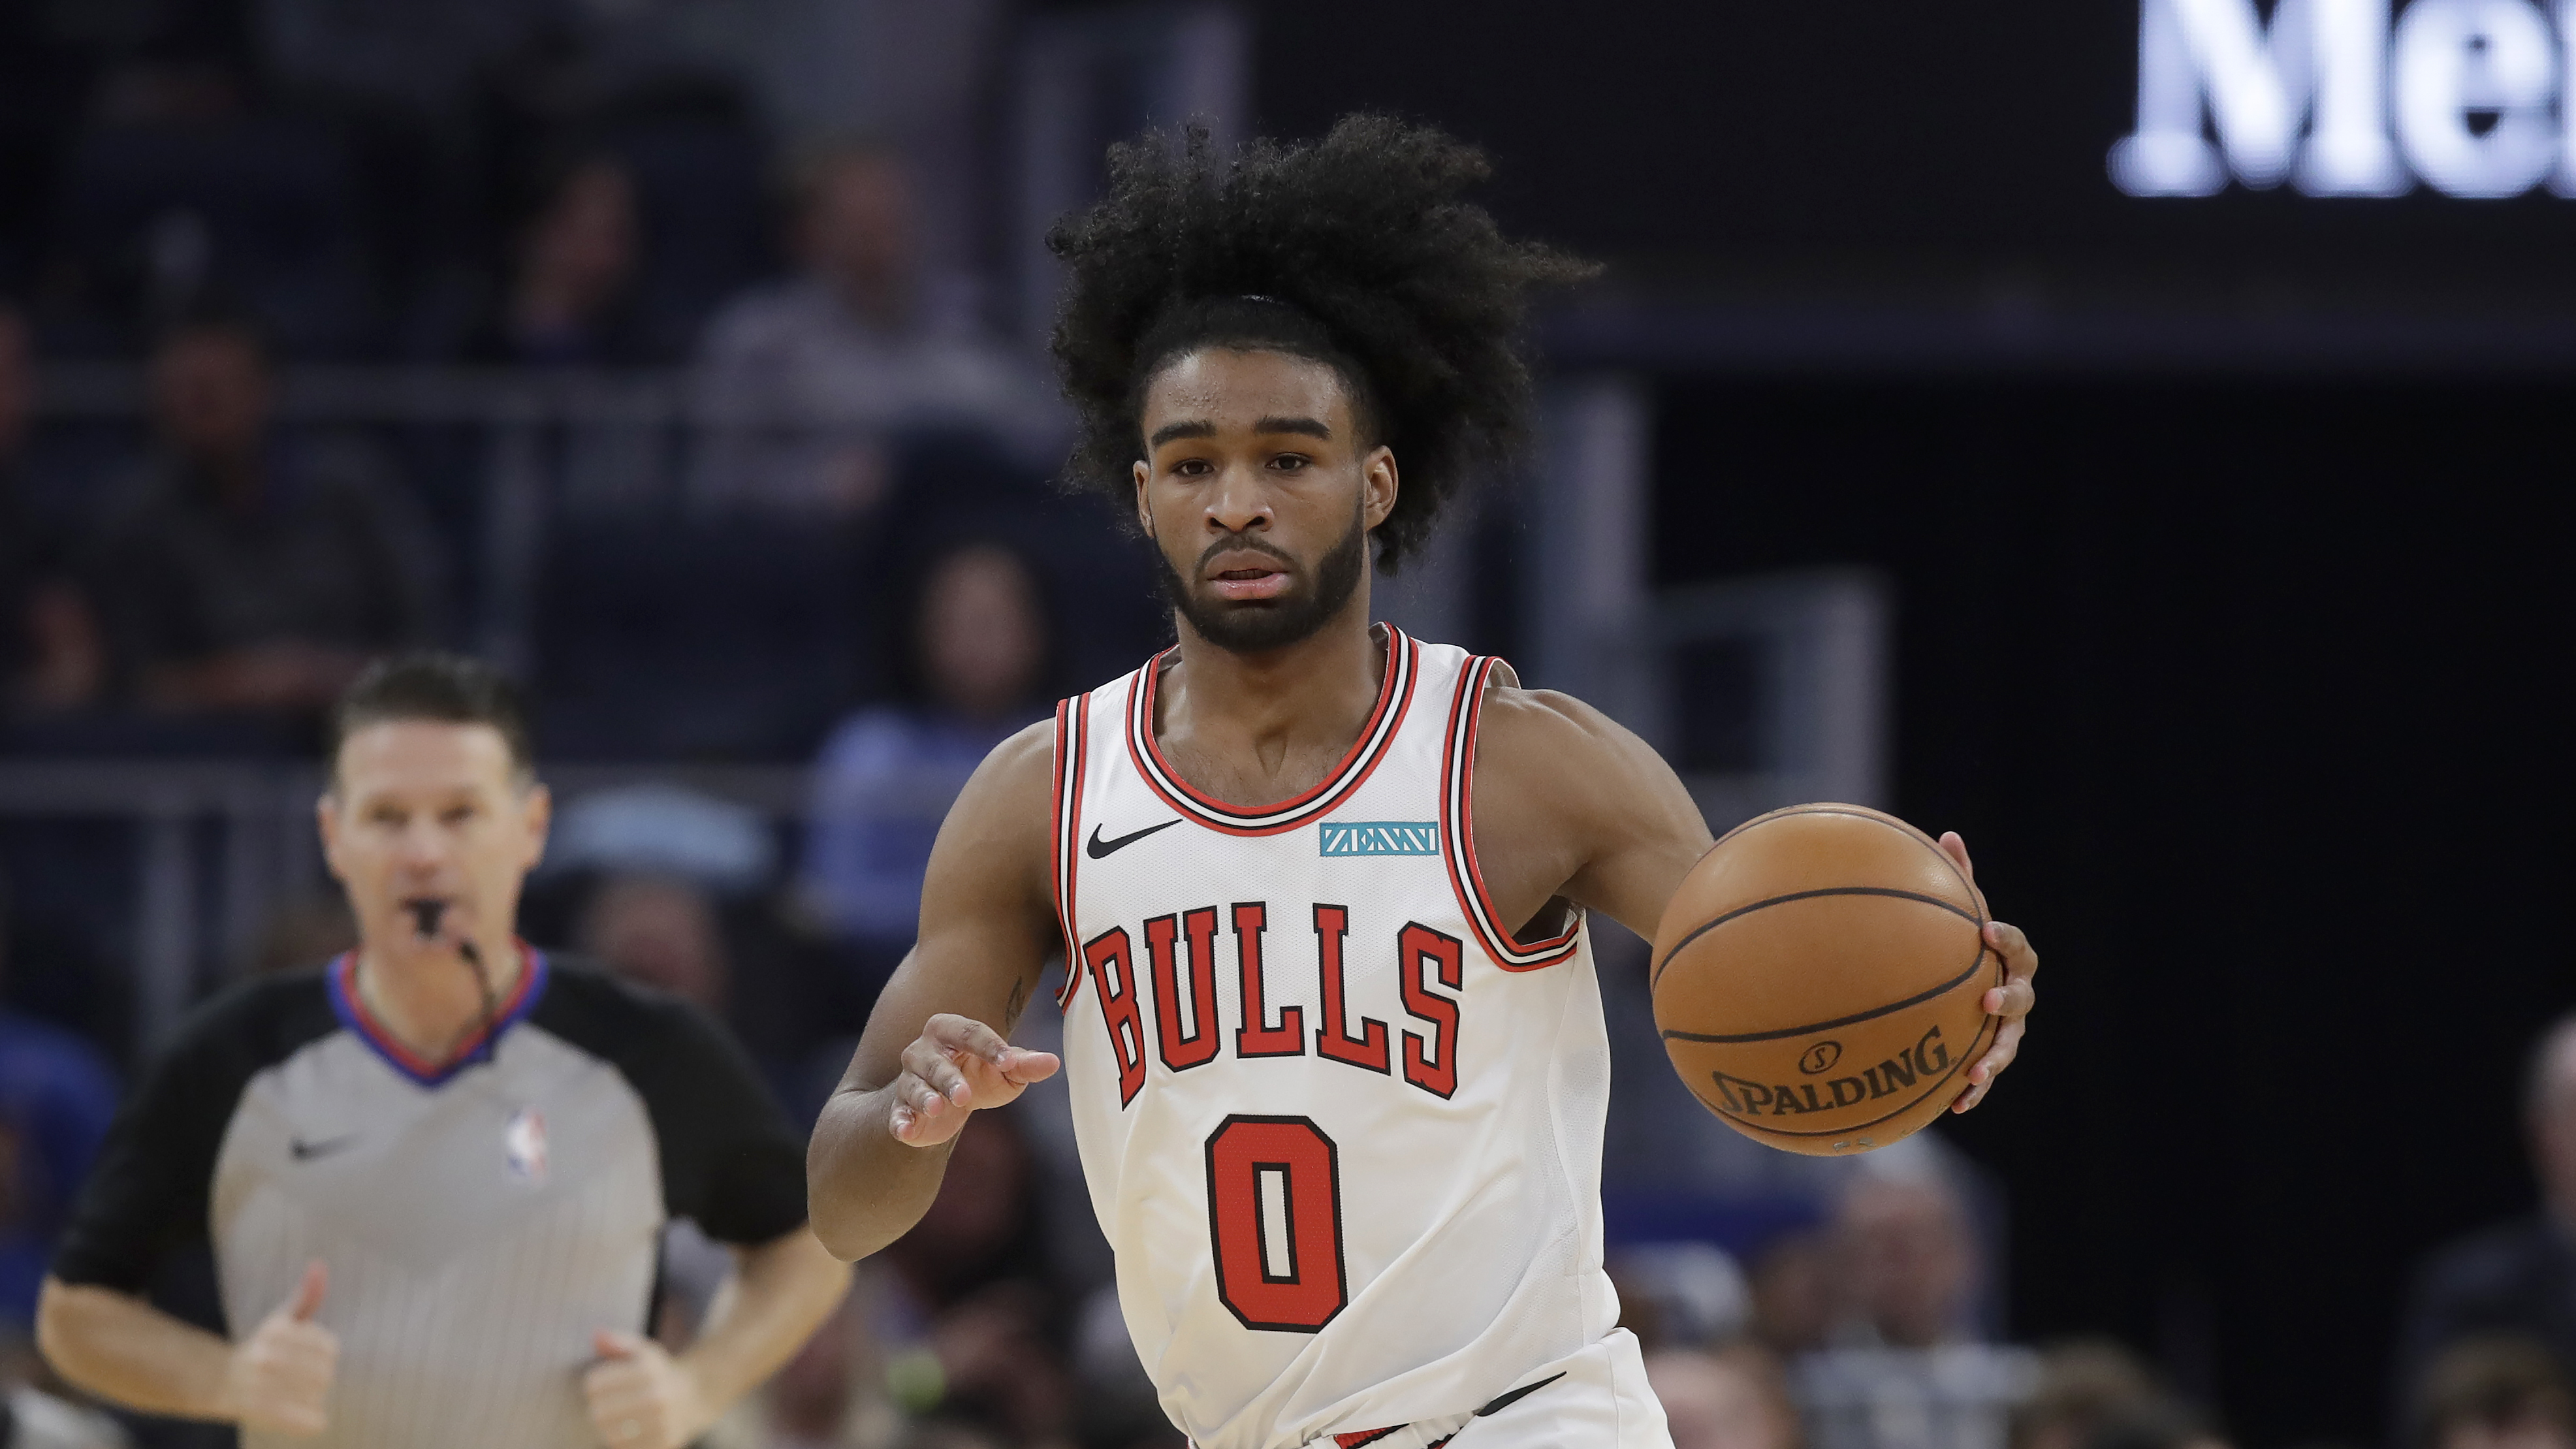 """This has been challenging for me for sure,'' Bulls rookie Coby White said of not starting. ""I haven't come off the bench in years.''"